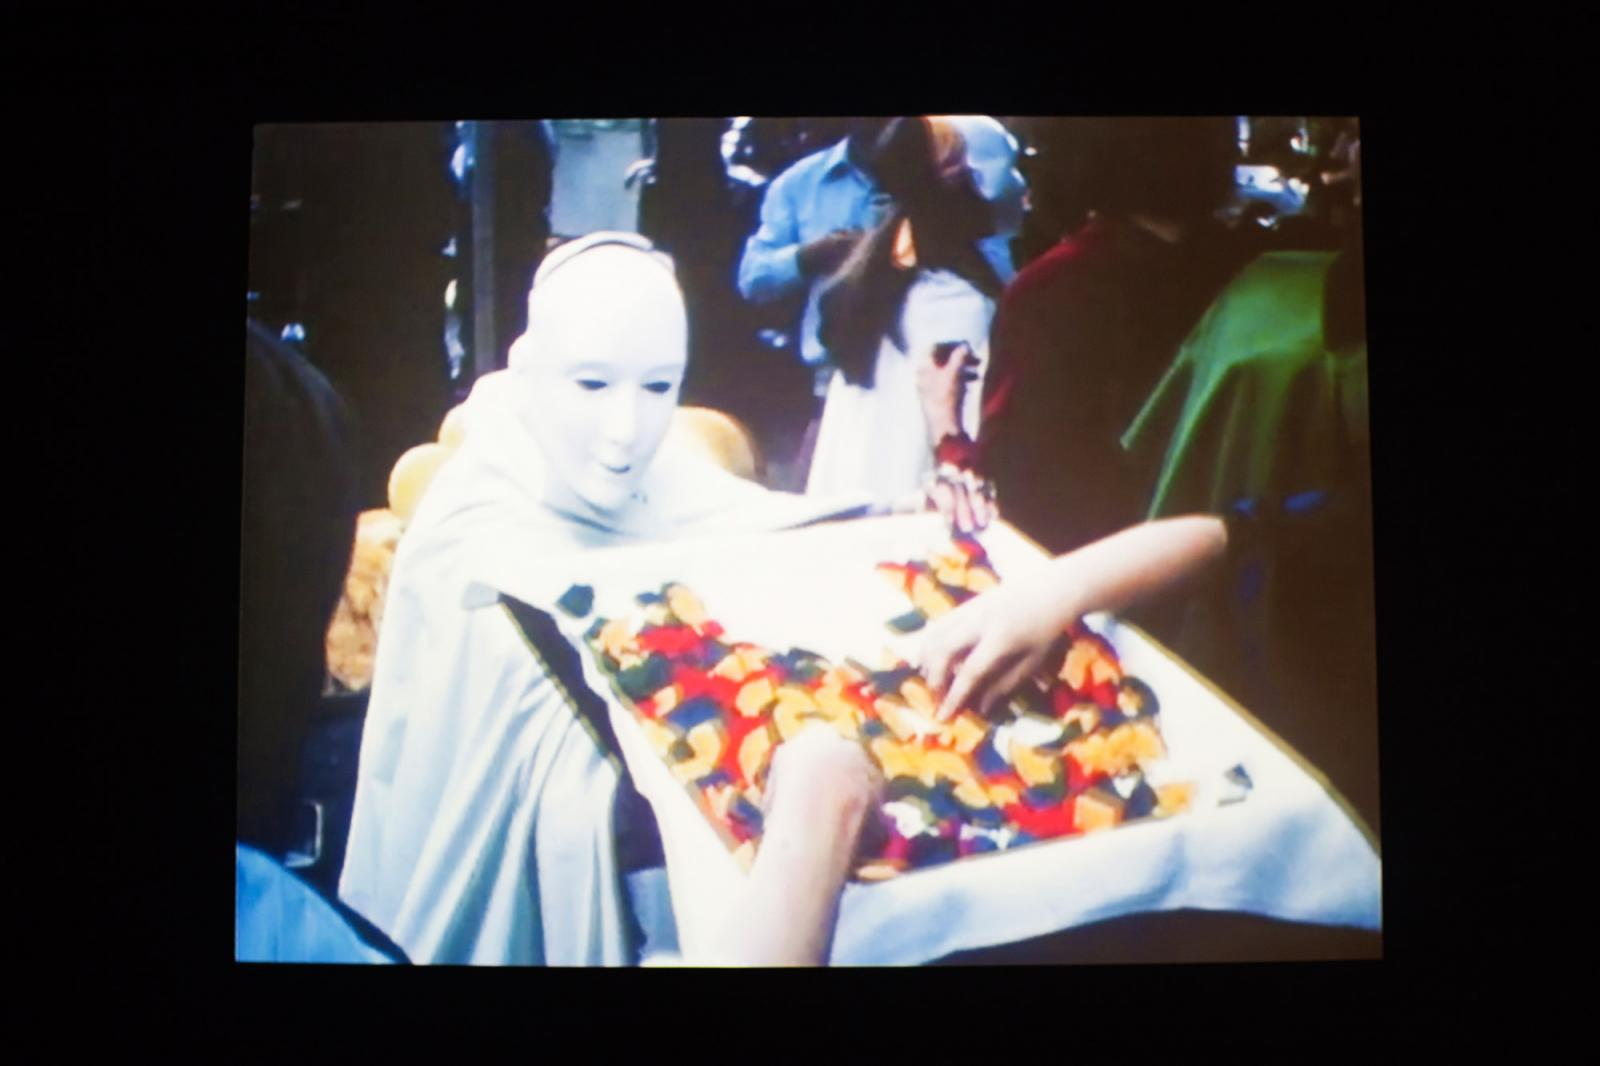 Antoni Miralda, Joan Rabascall, Dorothée Selz /Edible Performance /(2017, video still) Photo: Italo Rondinella